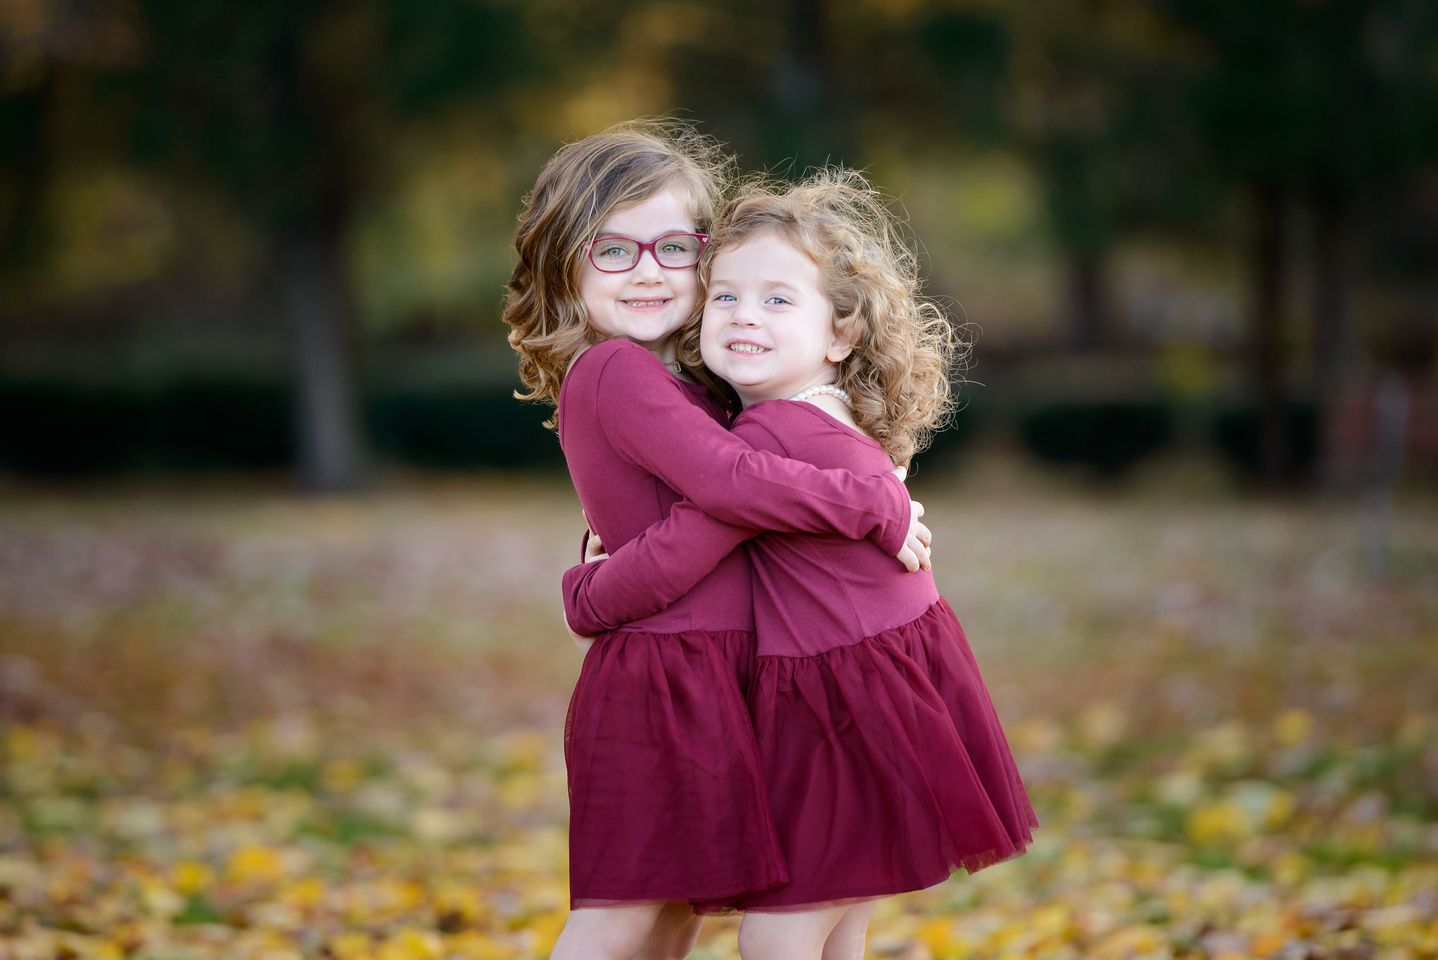 Sibling photo ideas, sibling posing, sisters, matching dresses